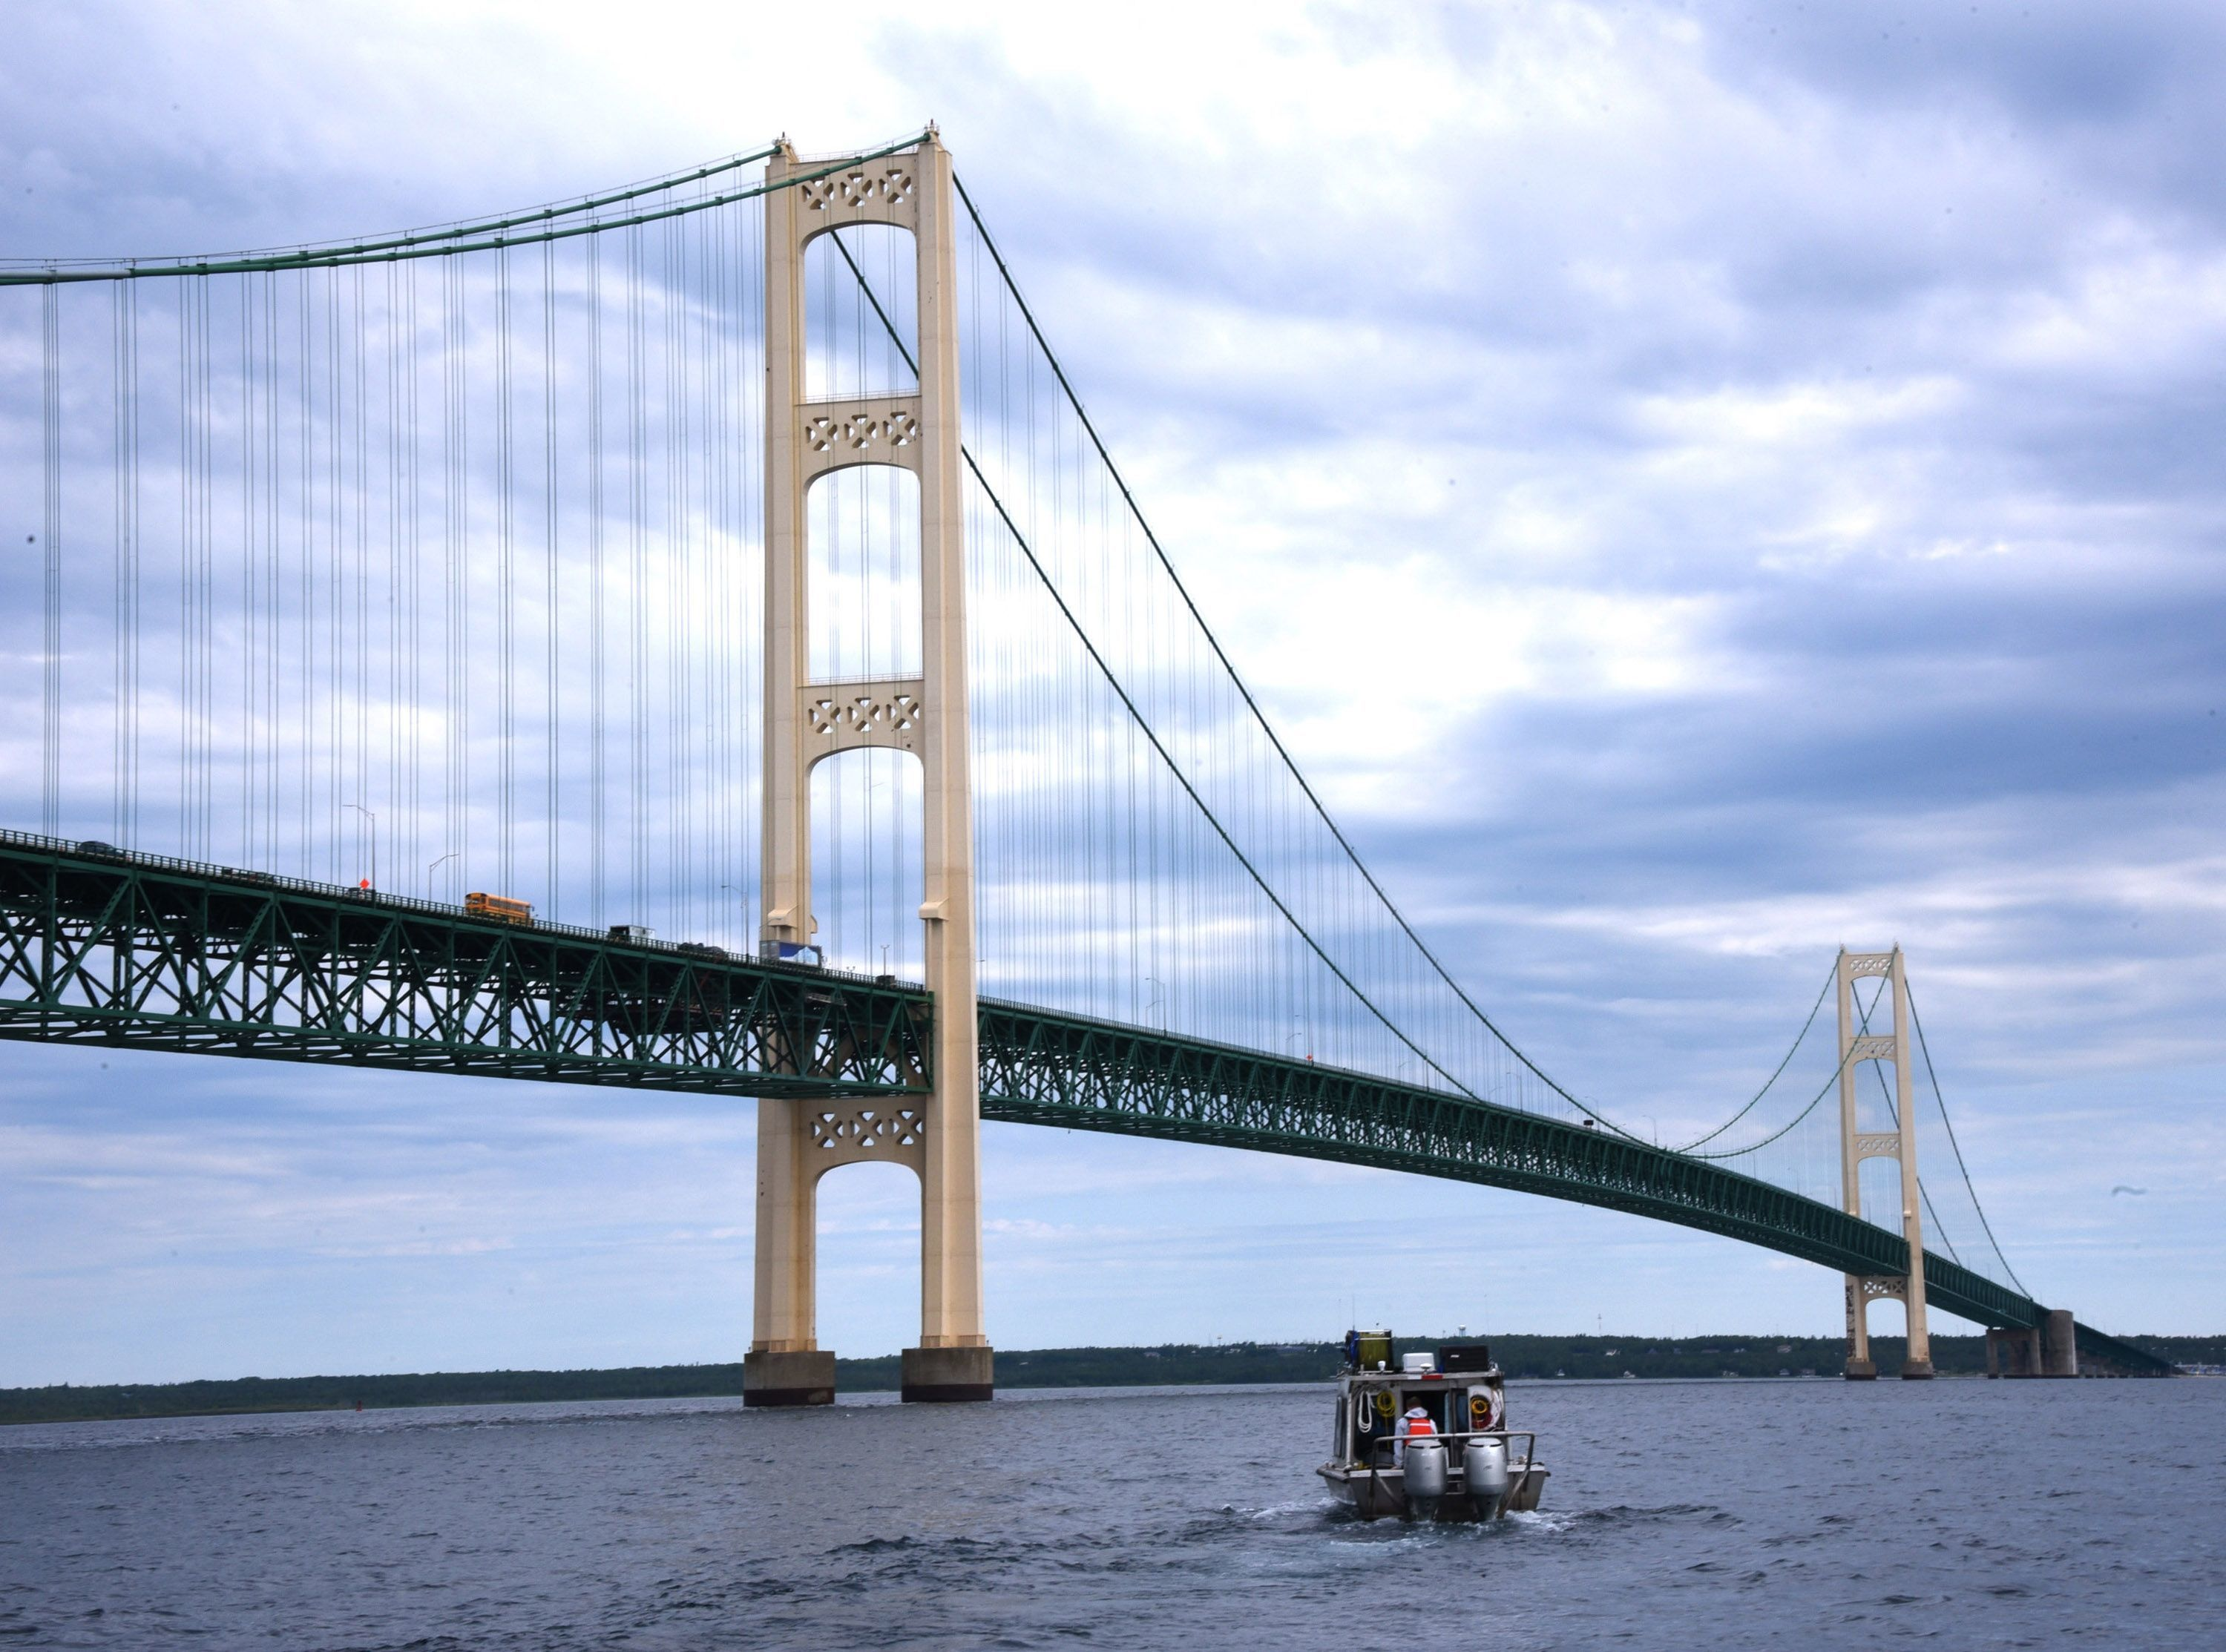 FILE -- Oil pipeline operator Enbridge moves under the Mackinac Bridge on their way to inspect their controversial Line 5 under the Straits of Mackinac Wednesday, June 8, 2016. Using an autonomous underwater vehicle and a roving underwater vehicle over several days, the entire five-mile-long pipeline, which rests on supports along the bottom of Lake Michigan,will have been covered by both sonar and visual means.